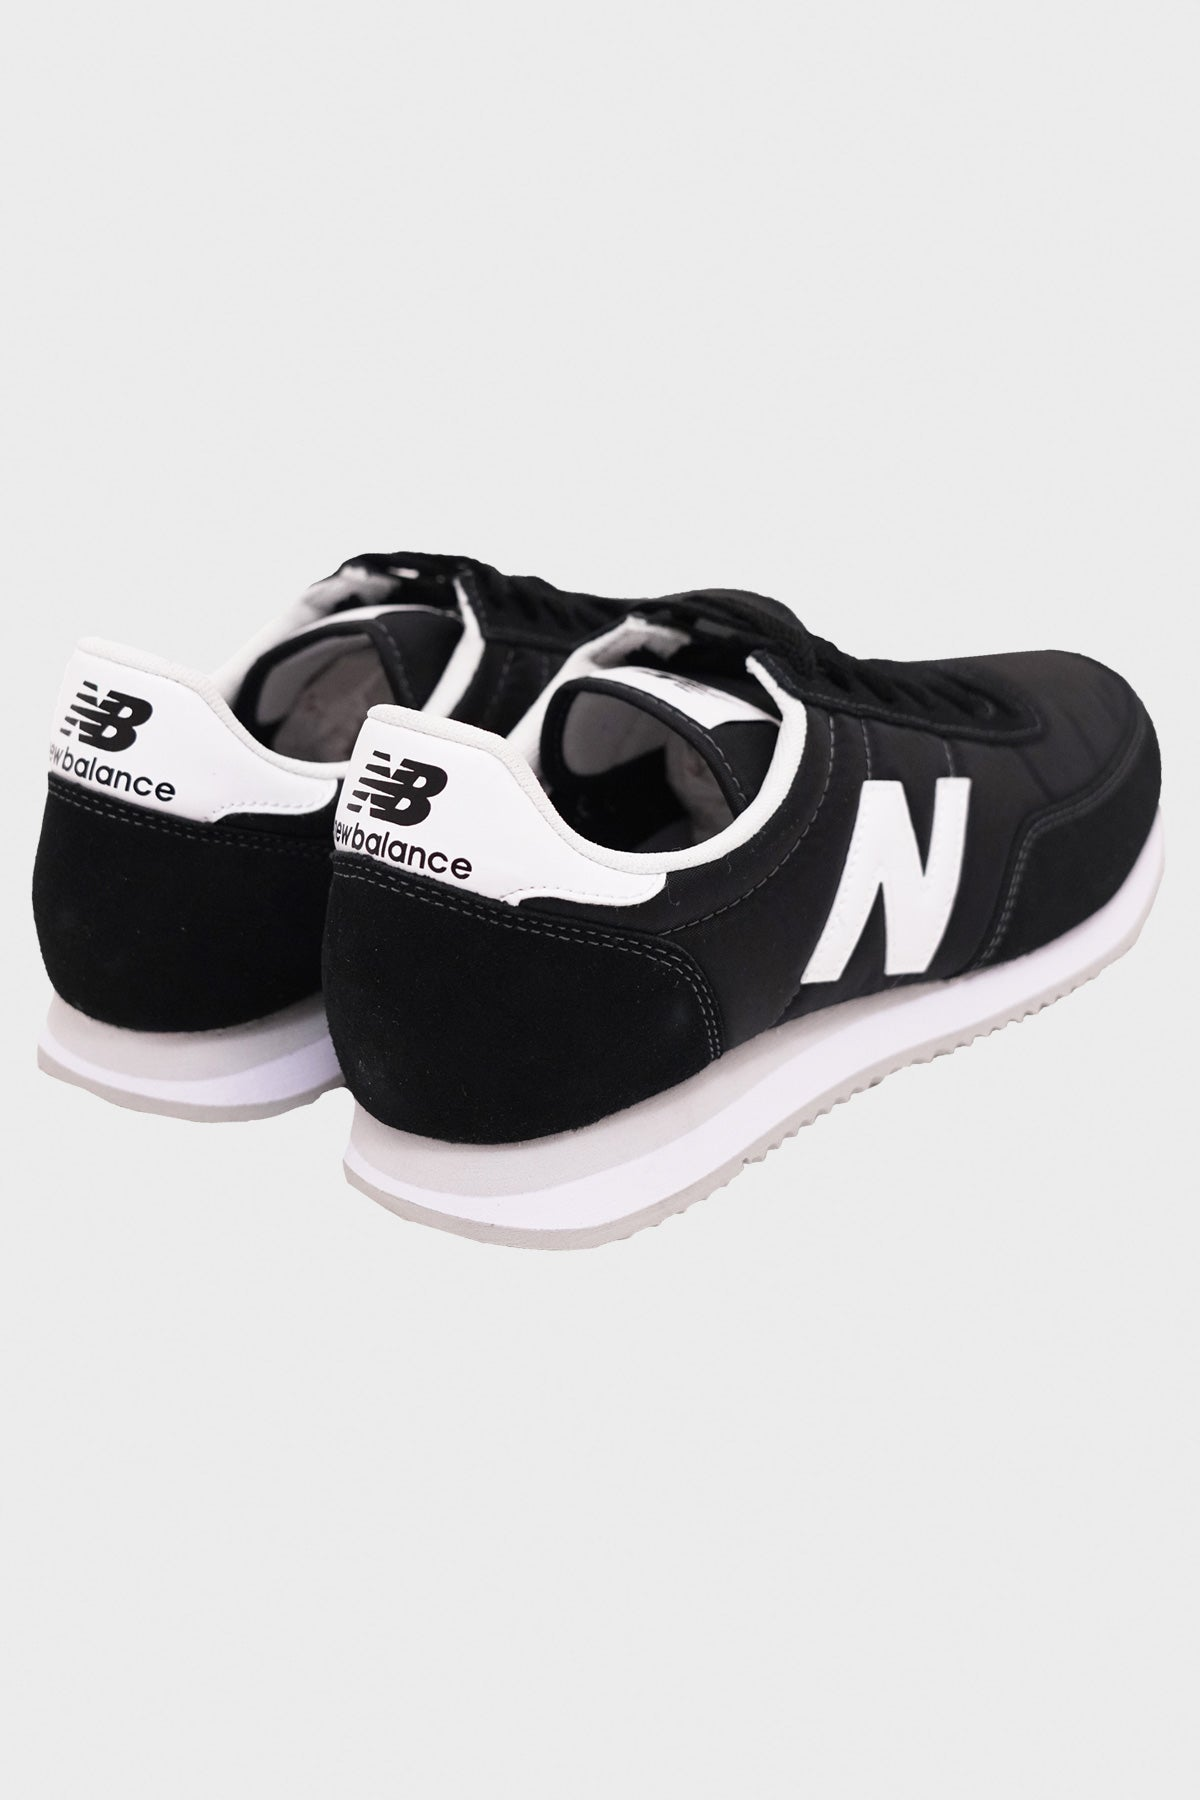 New Balance - NB 720 - Black - Canoe Club